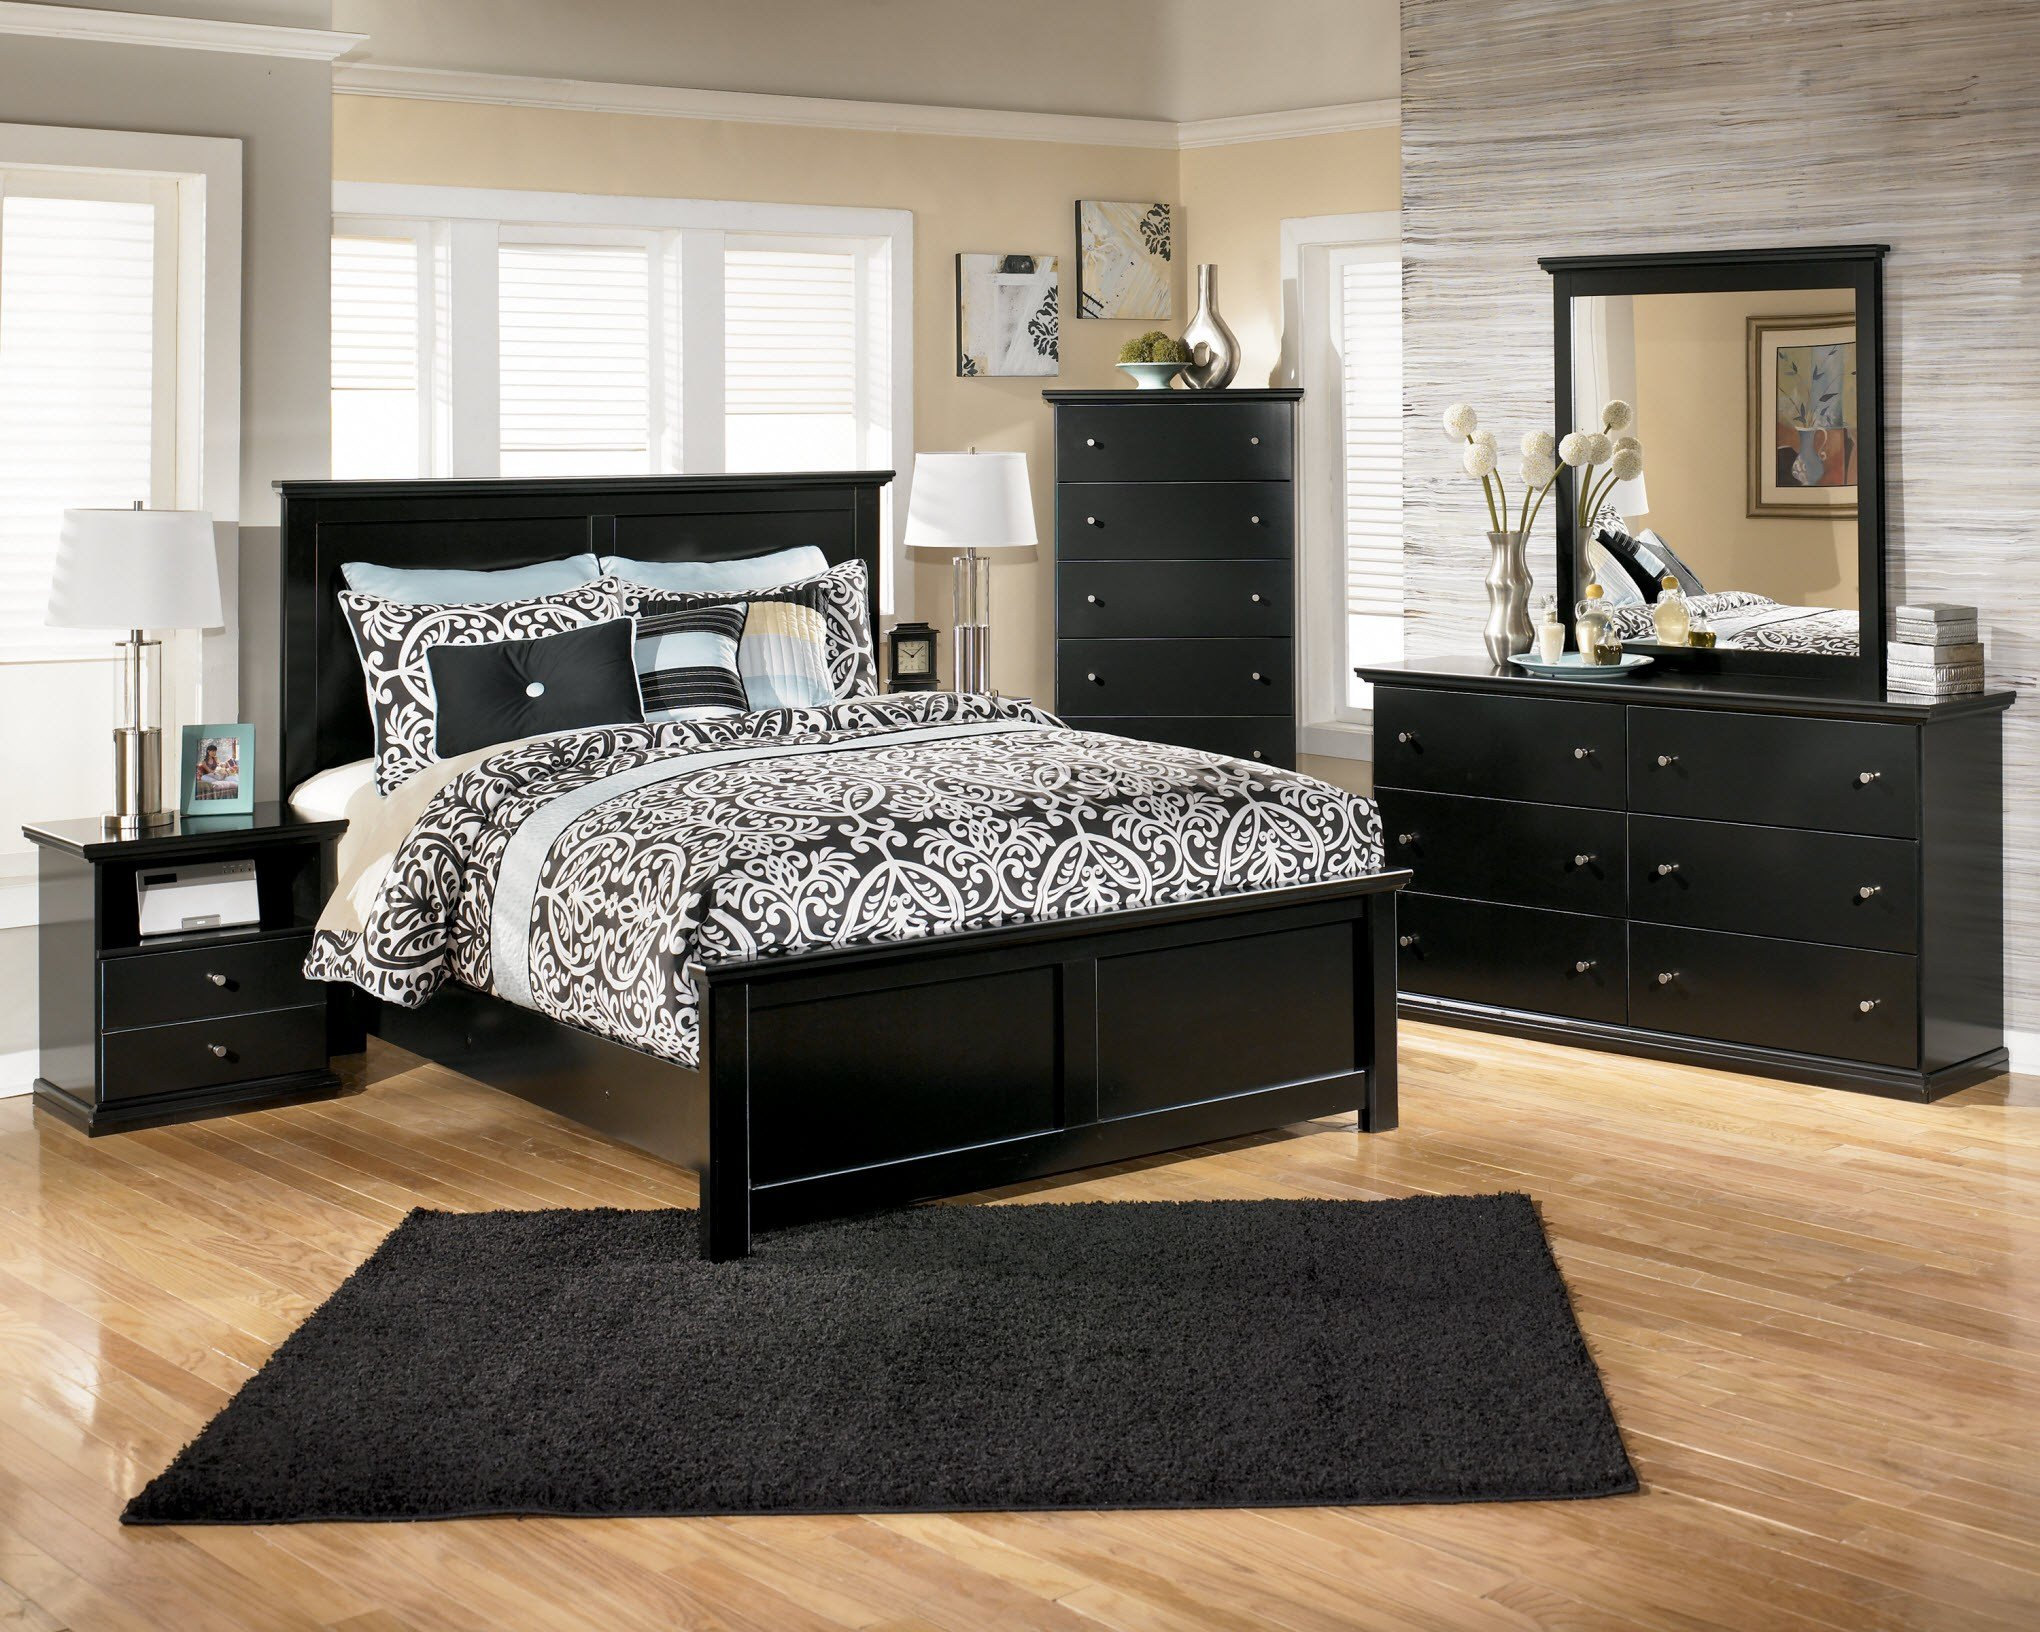 Best Making An Amazing Bed Room With Black Bedroom Furniture With Pictures